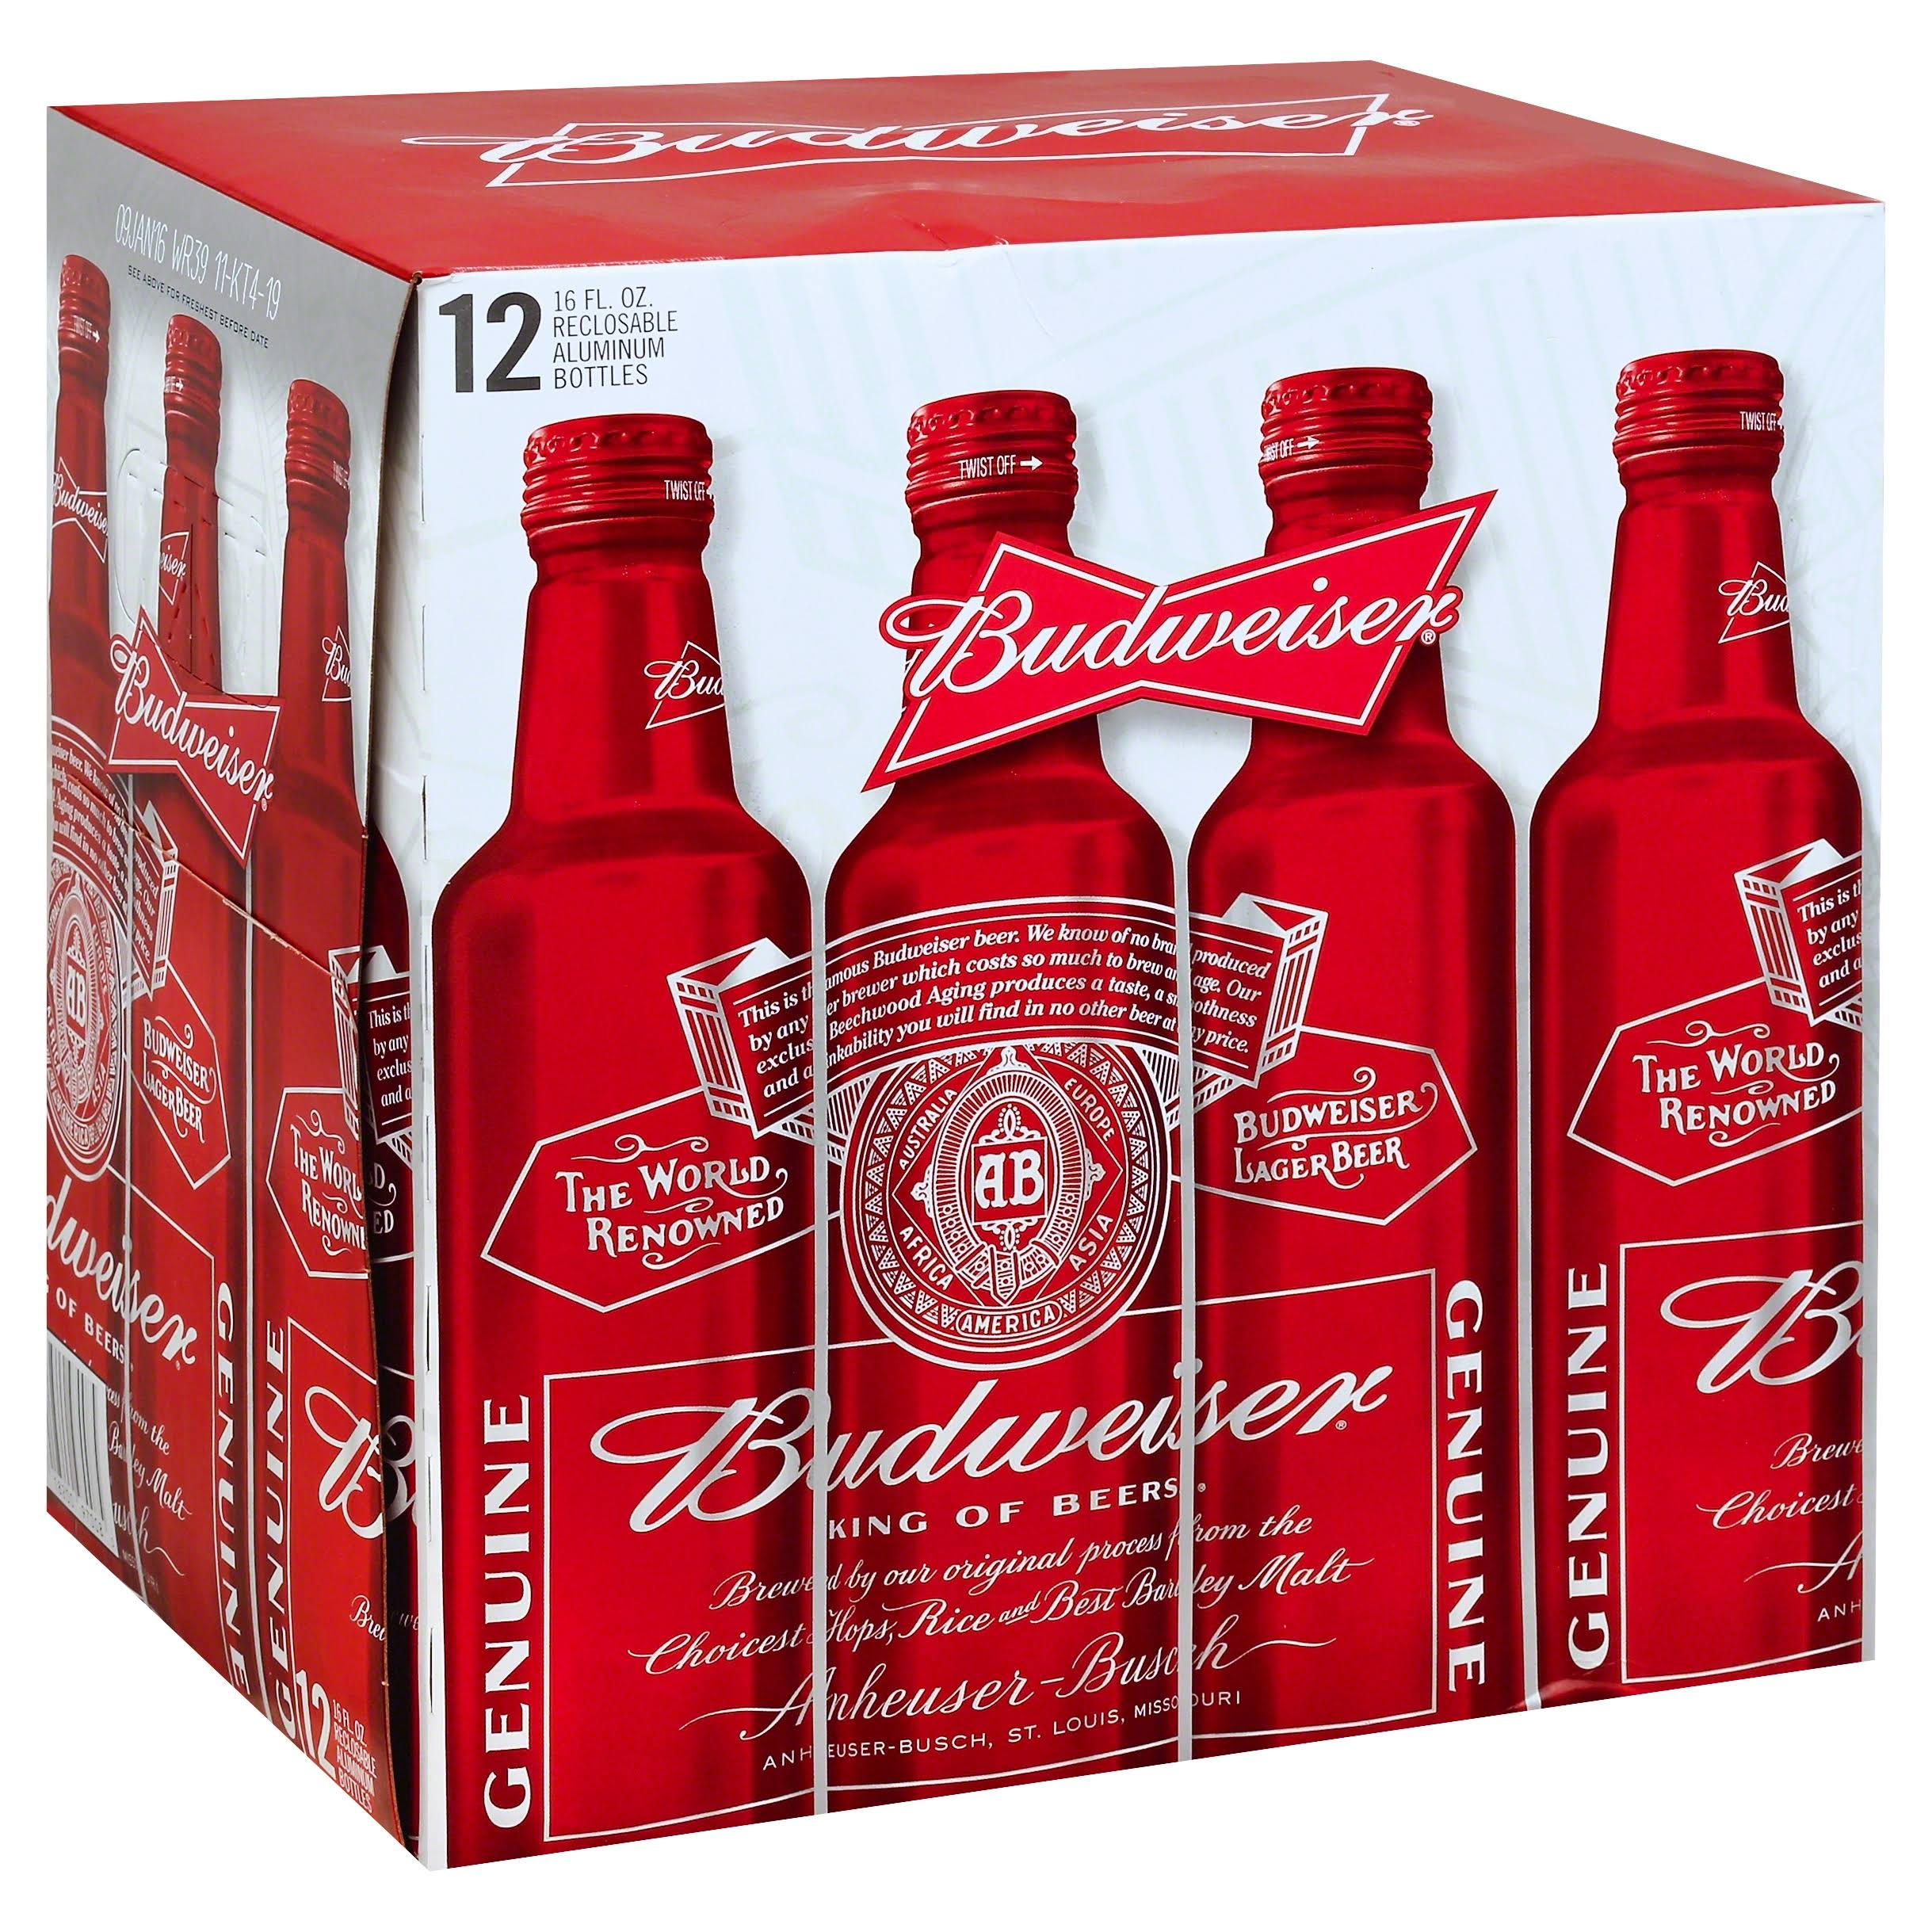 Budweiser Beer, Lager - 12 pack, 16 fl oz bottles